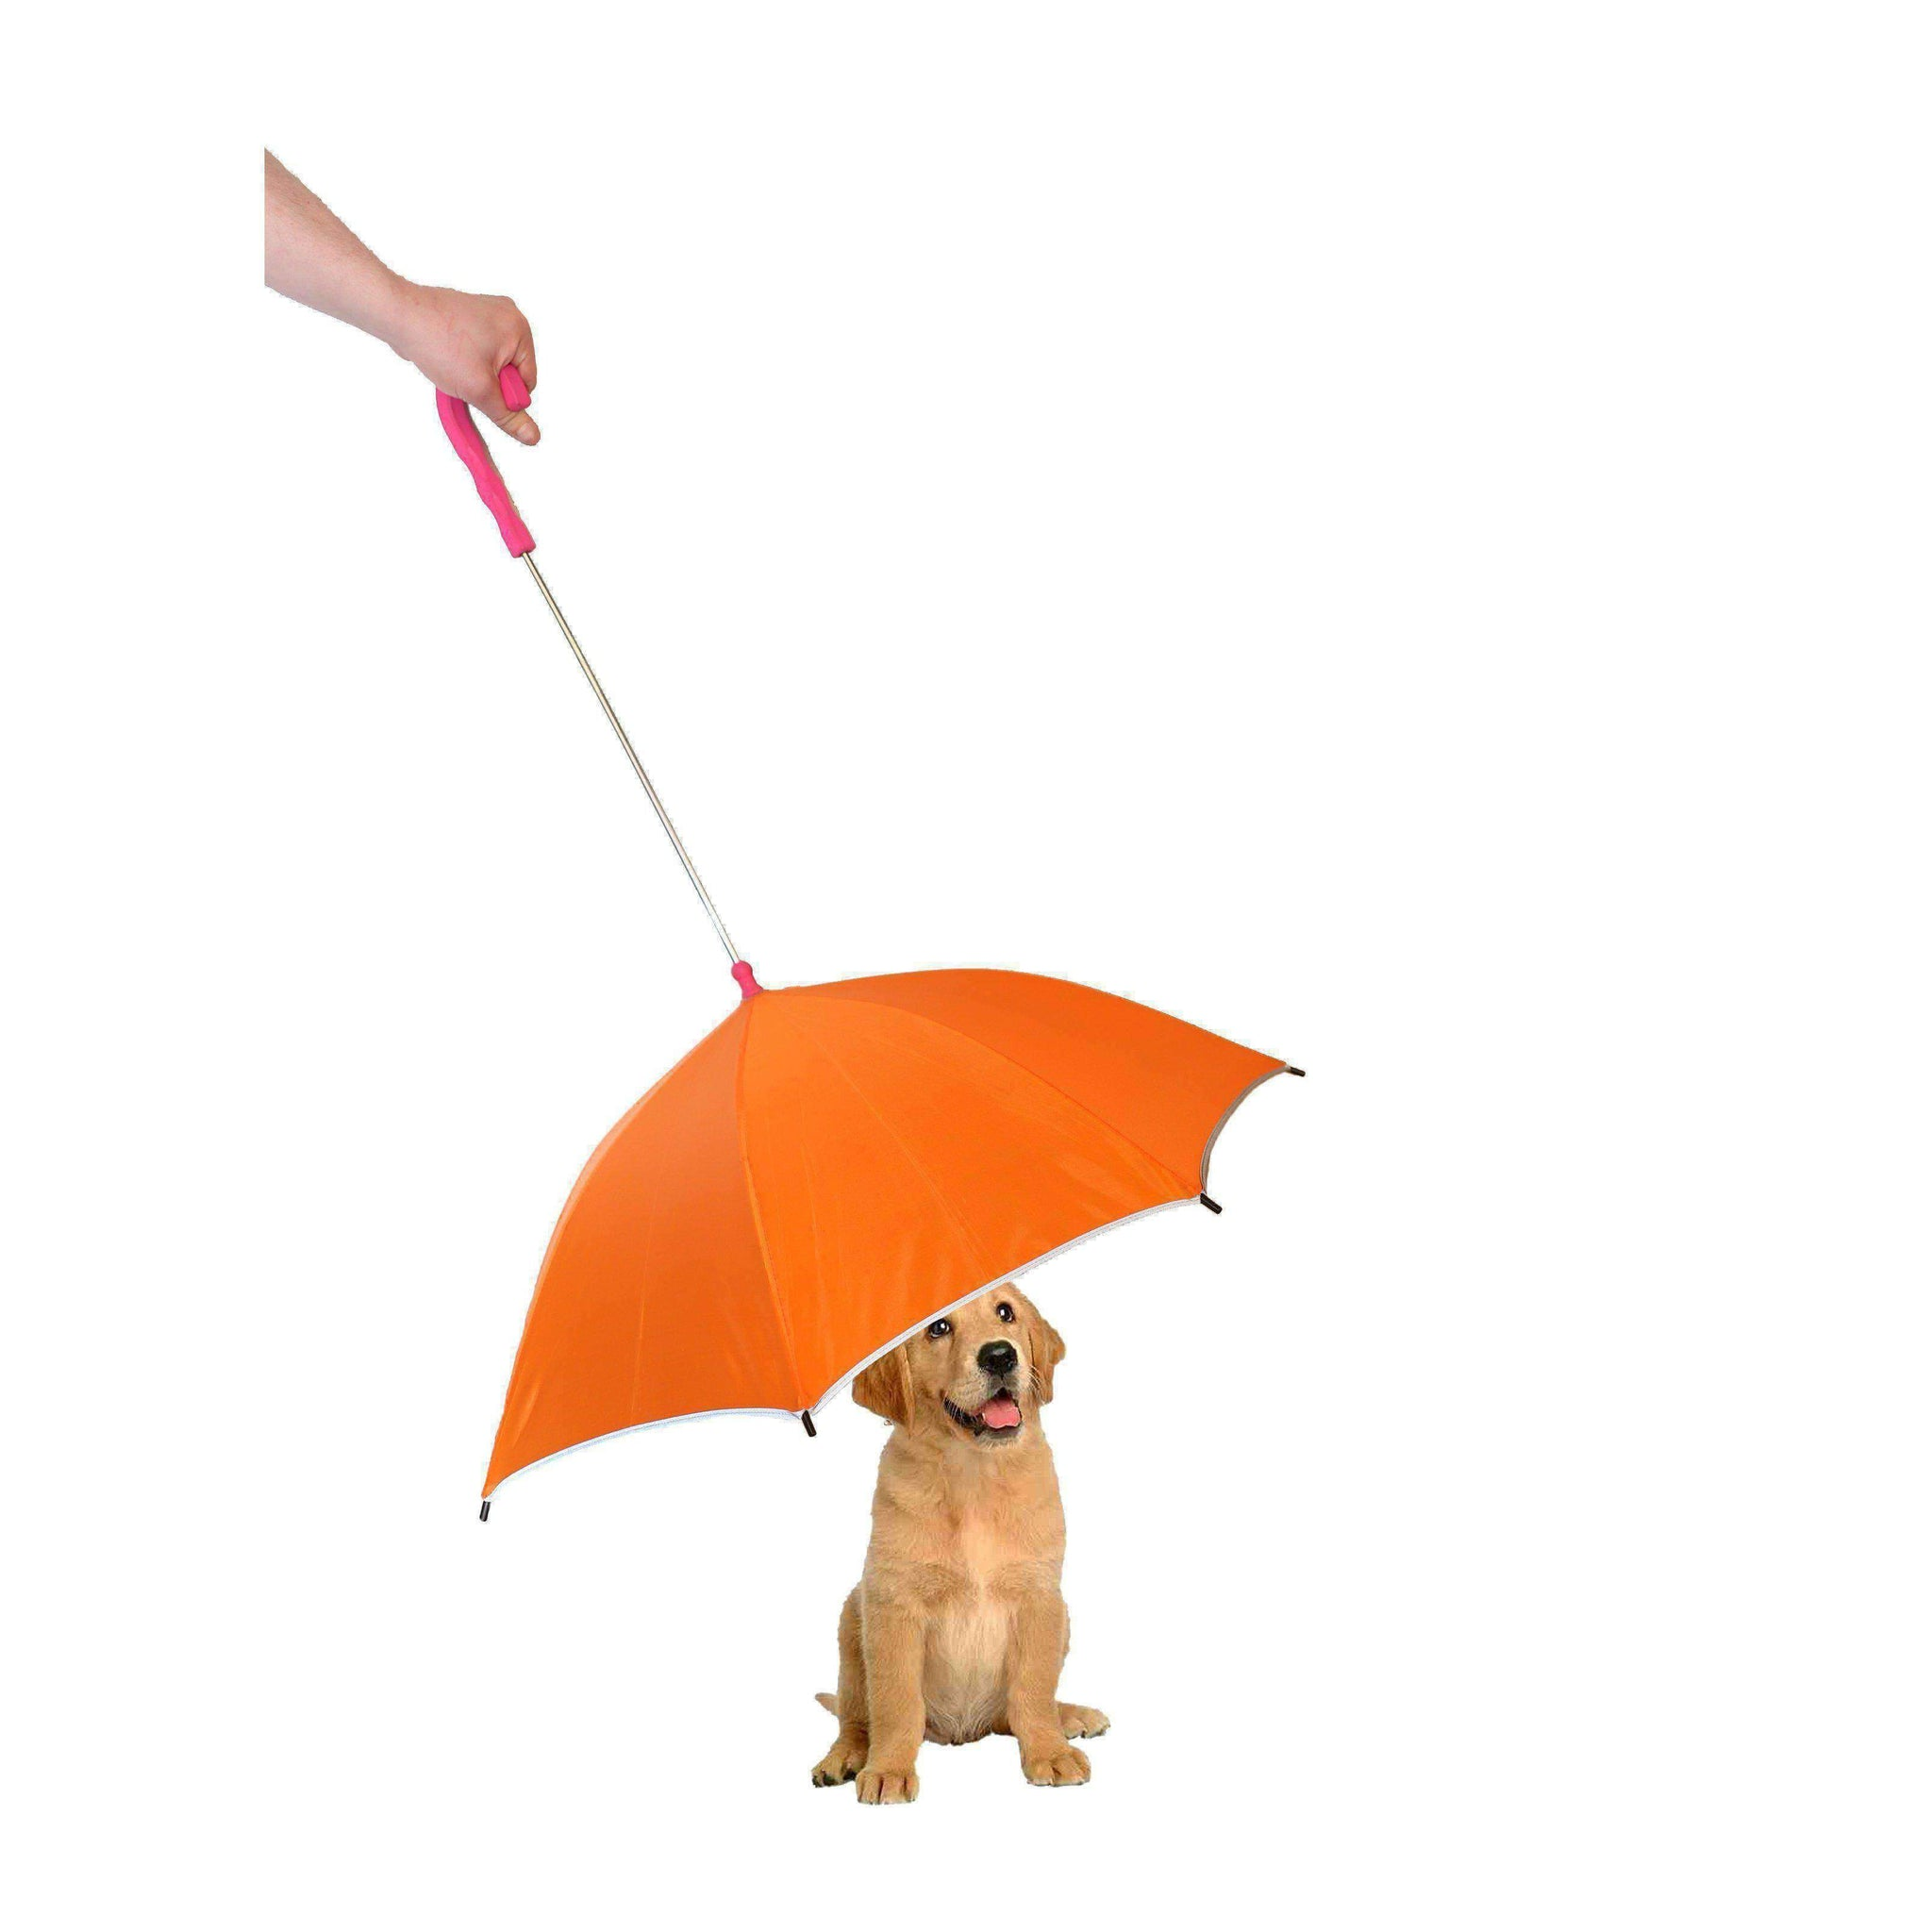 Pour-Protection Umbrella With Reflective Lining And Leash Holder-Pet Life-DirtyFurClothing